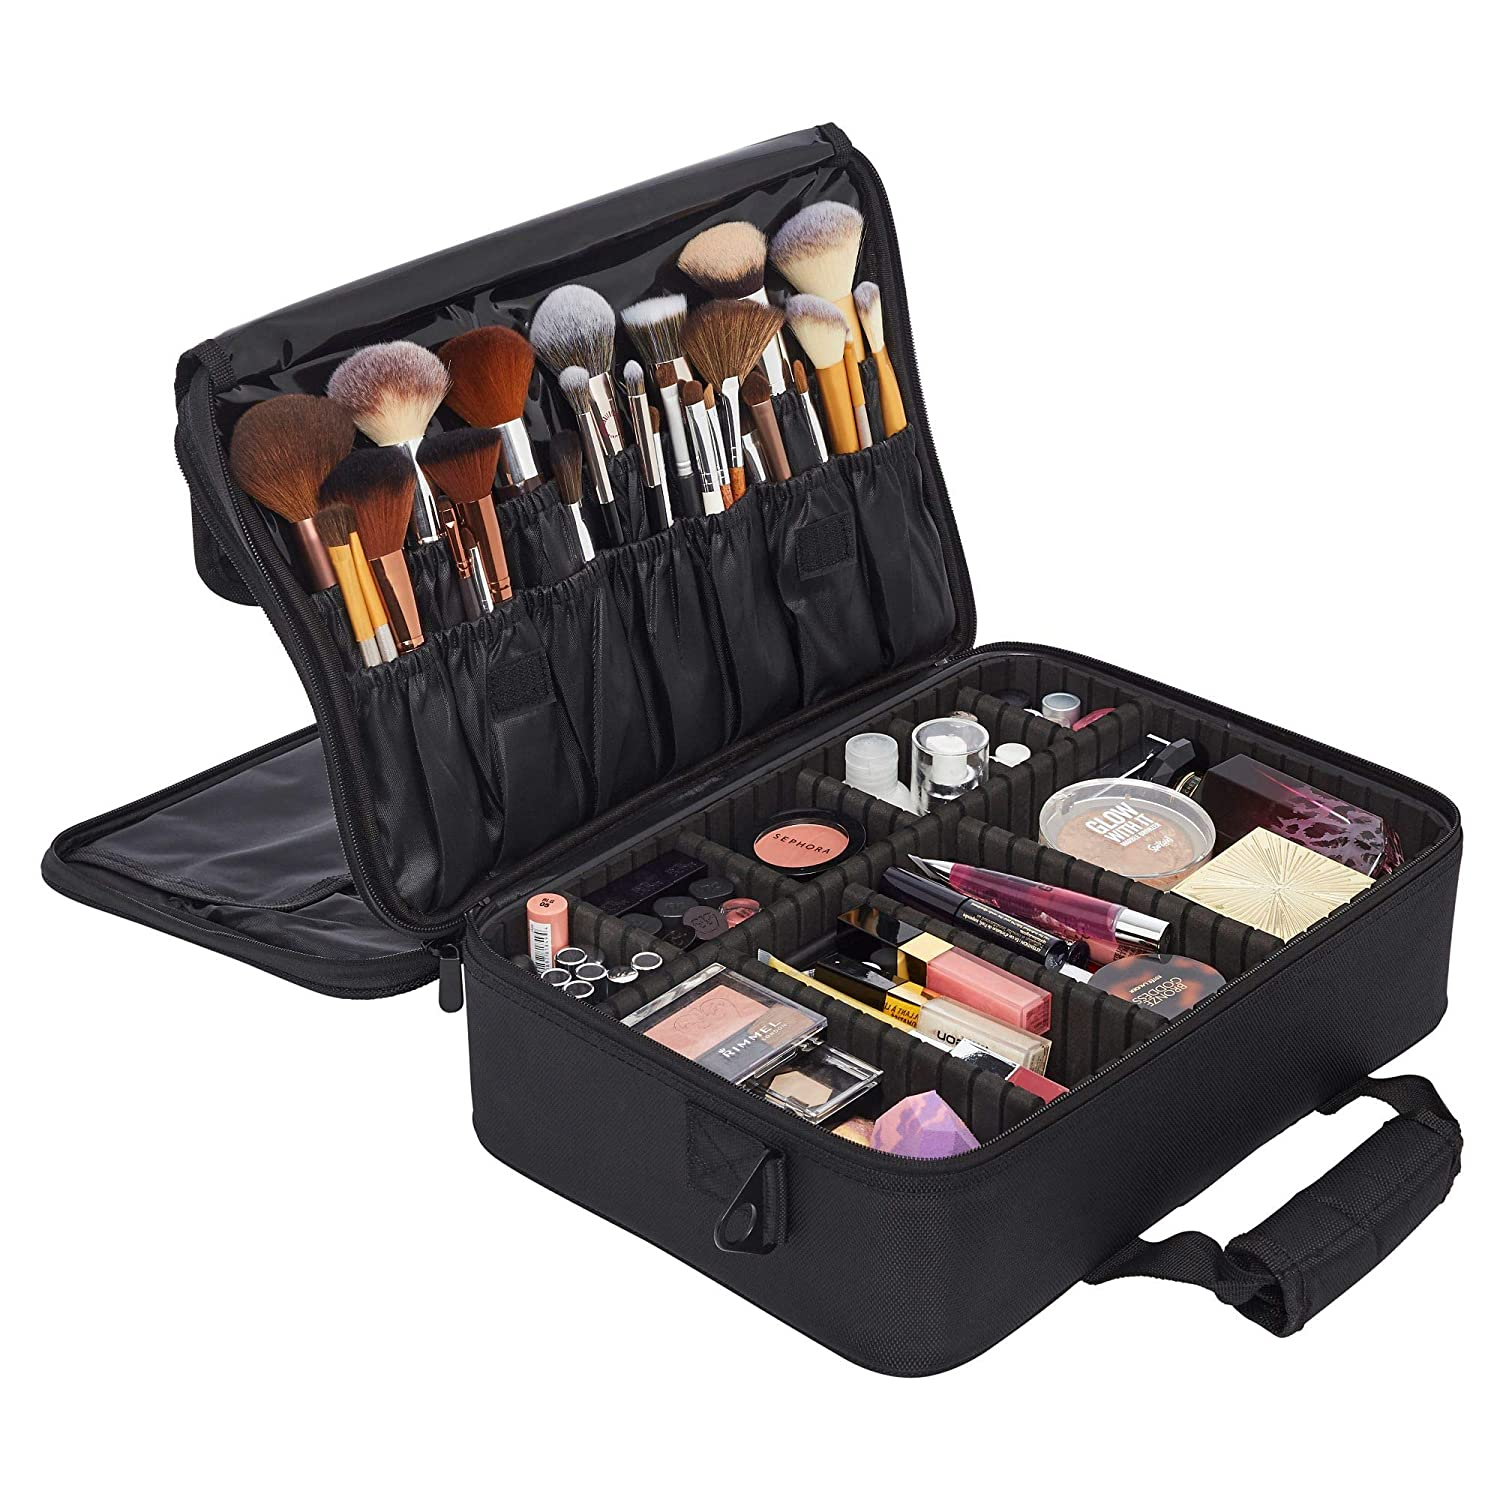 Ballage Large Travel Makeup Bag 3 Layer with Adjustable Dividers, Makeup Organizer Bag, Multipurpose Cosmetic Organizer, Overnight Pouch